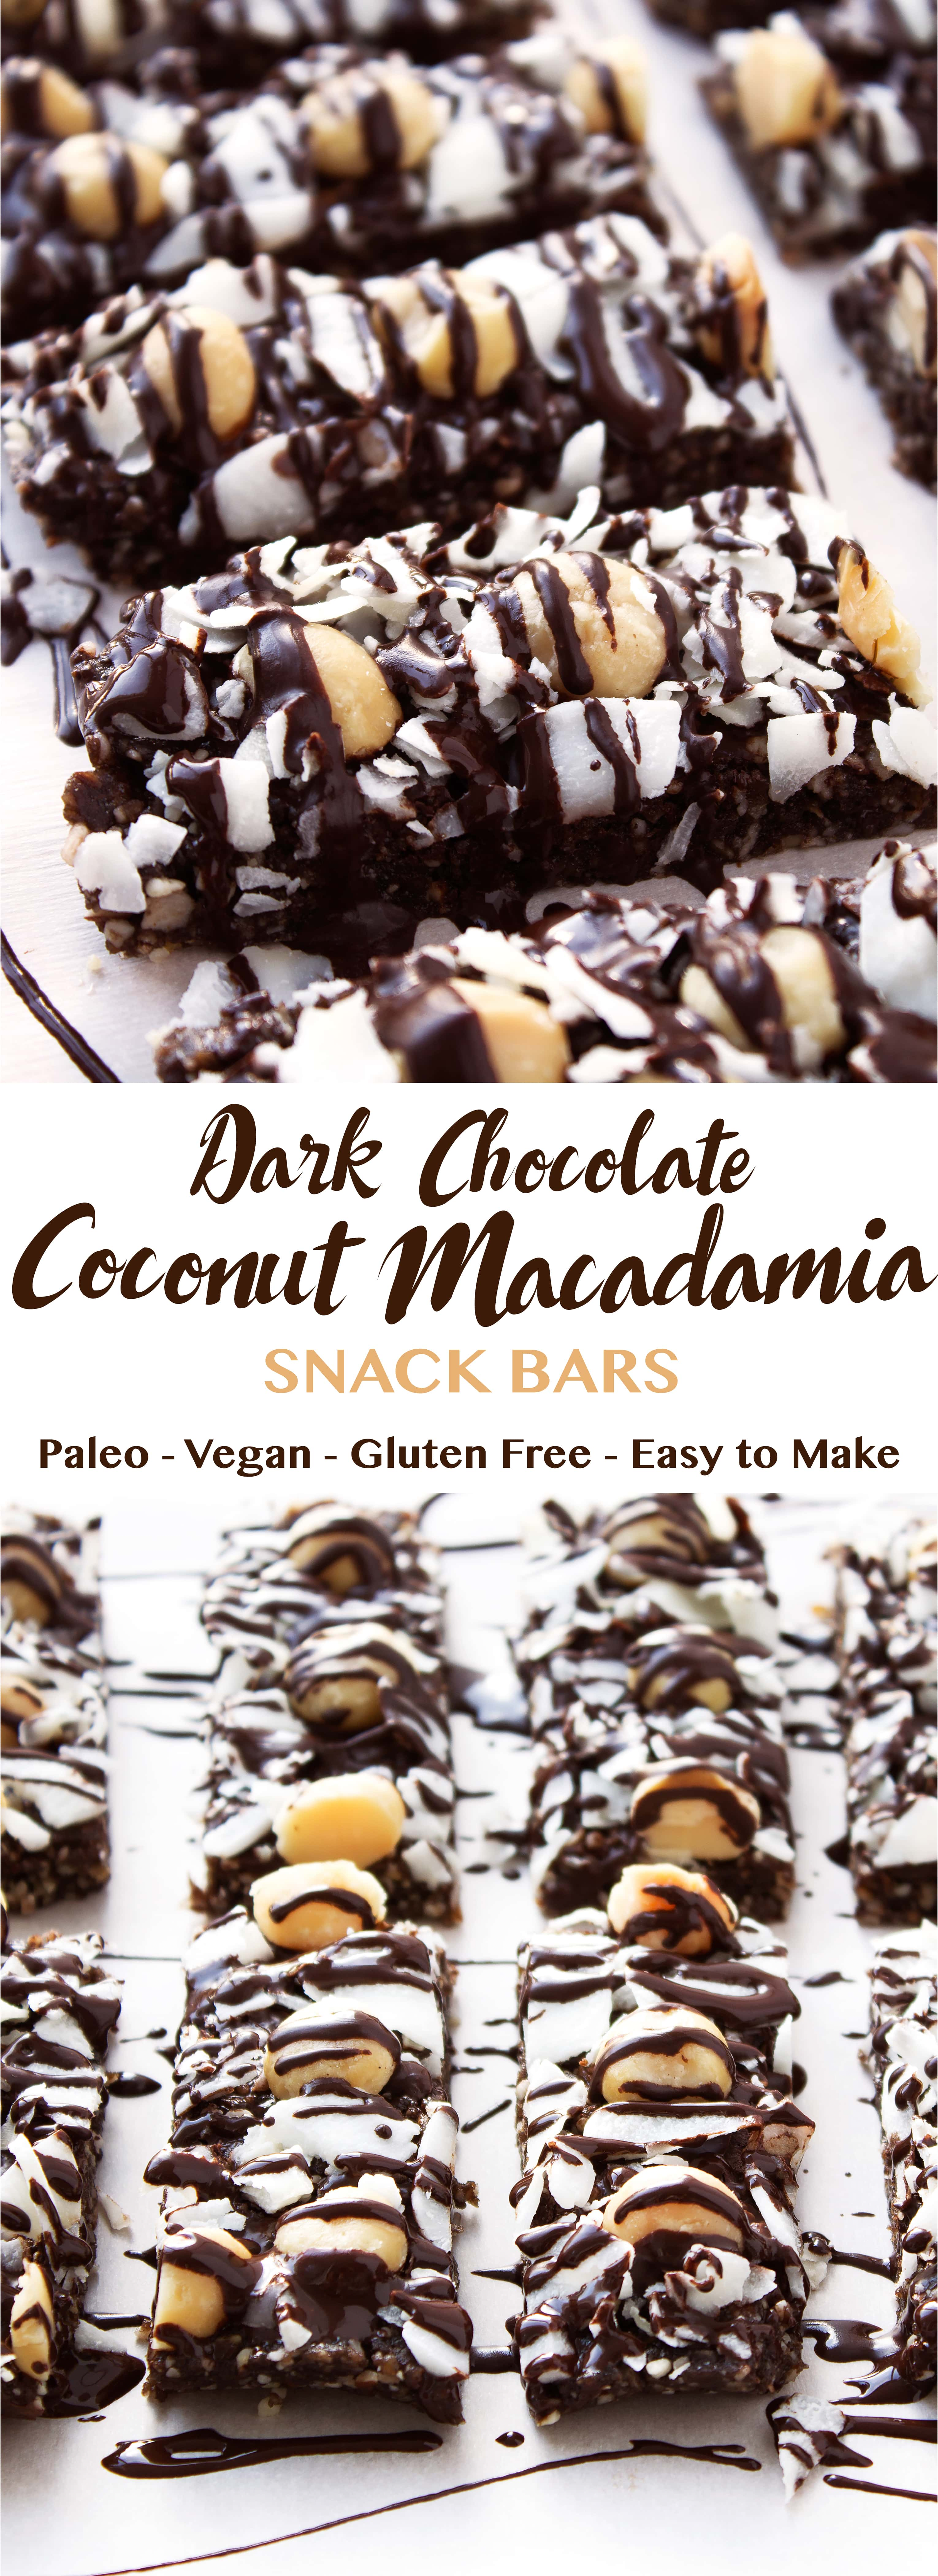 Dark Chocolate Coconut Macadamia Snack Bars | Kit's Coastal | #kitscoastal #coastalpaleo #paleo #glutenfree #vegan #dairyfree